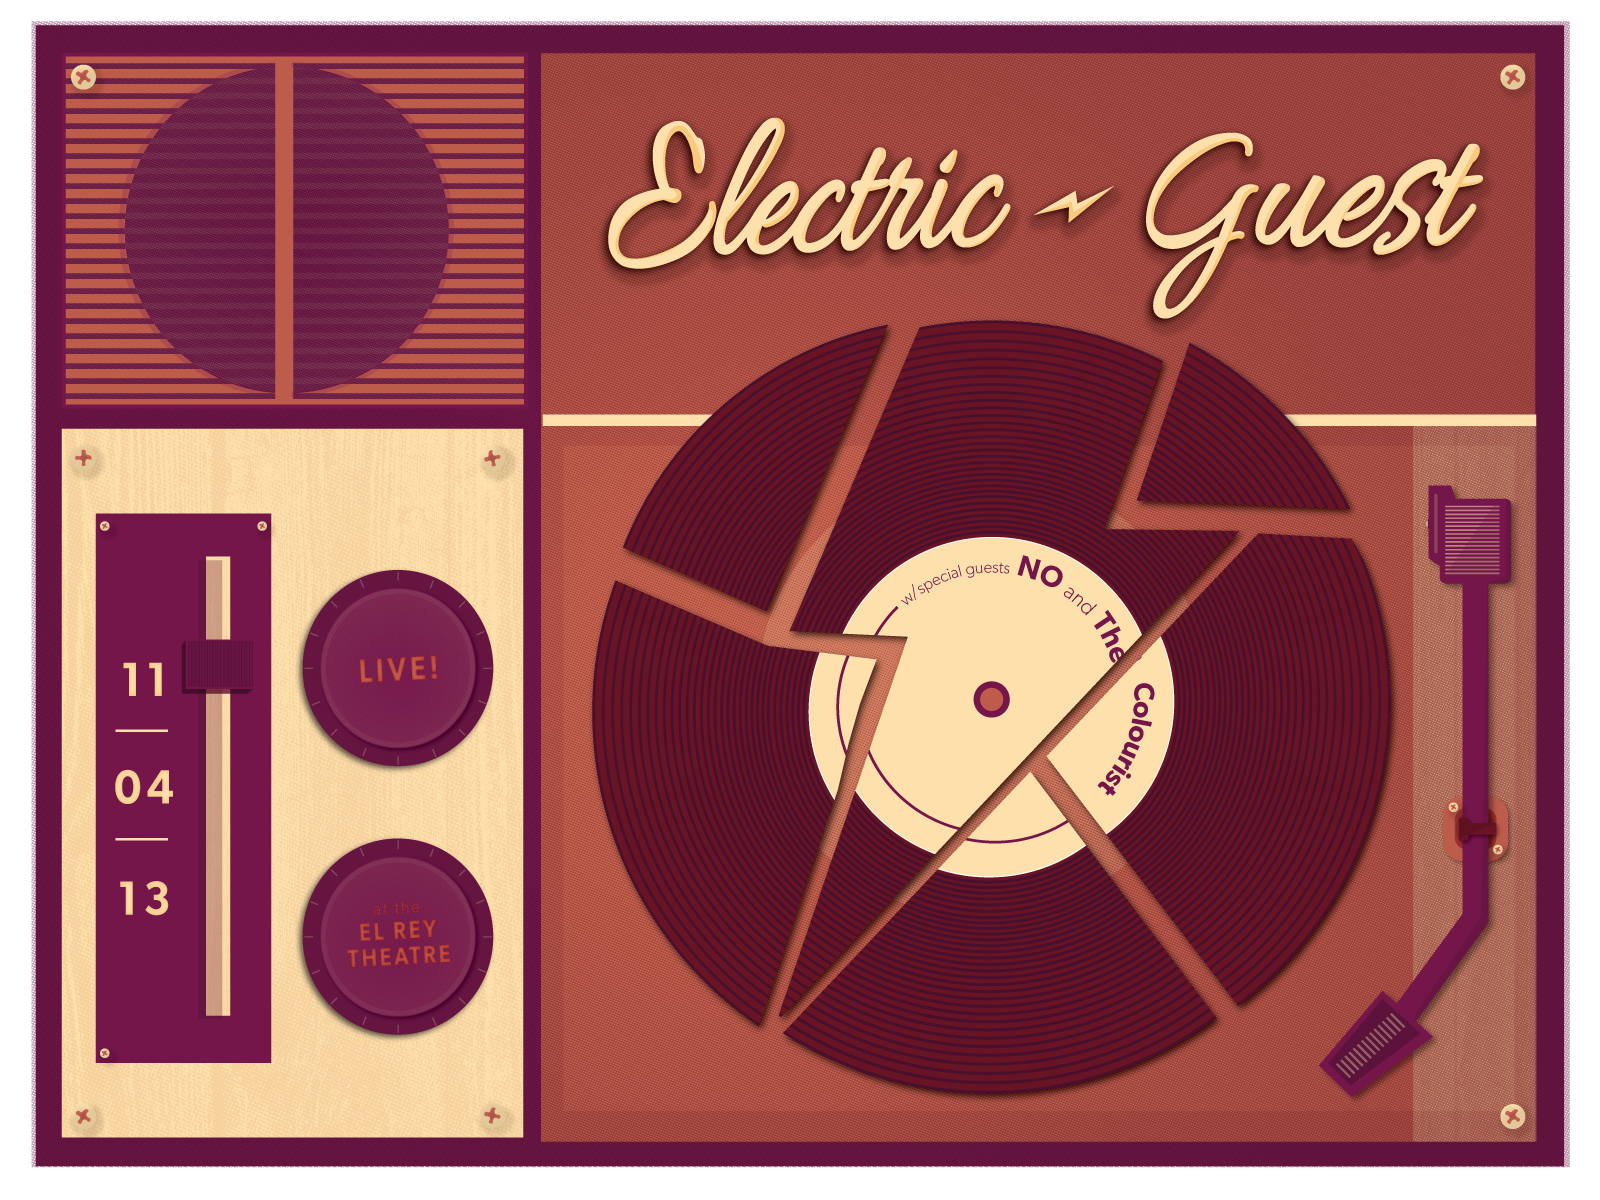 Electric Guest Gig Poster - image 1 - student project